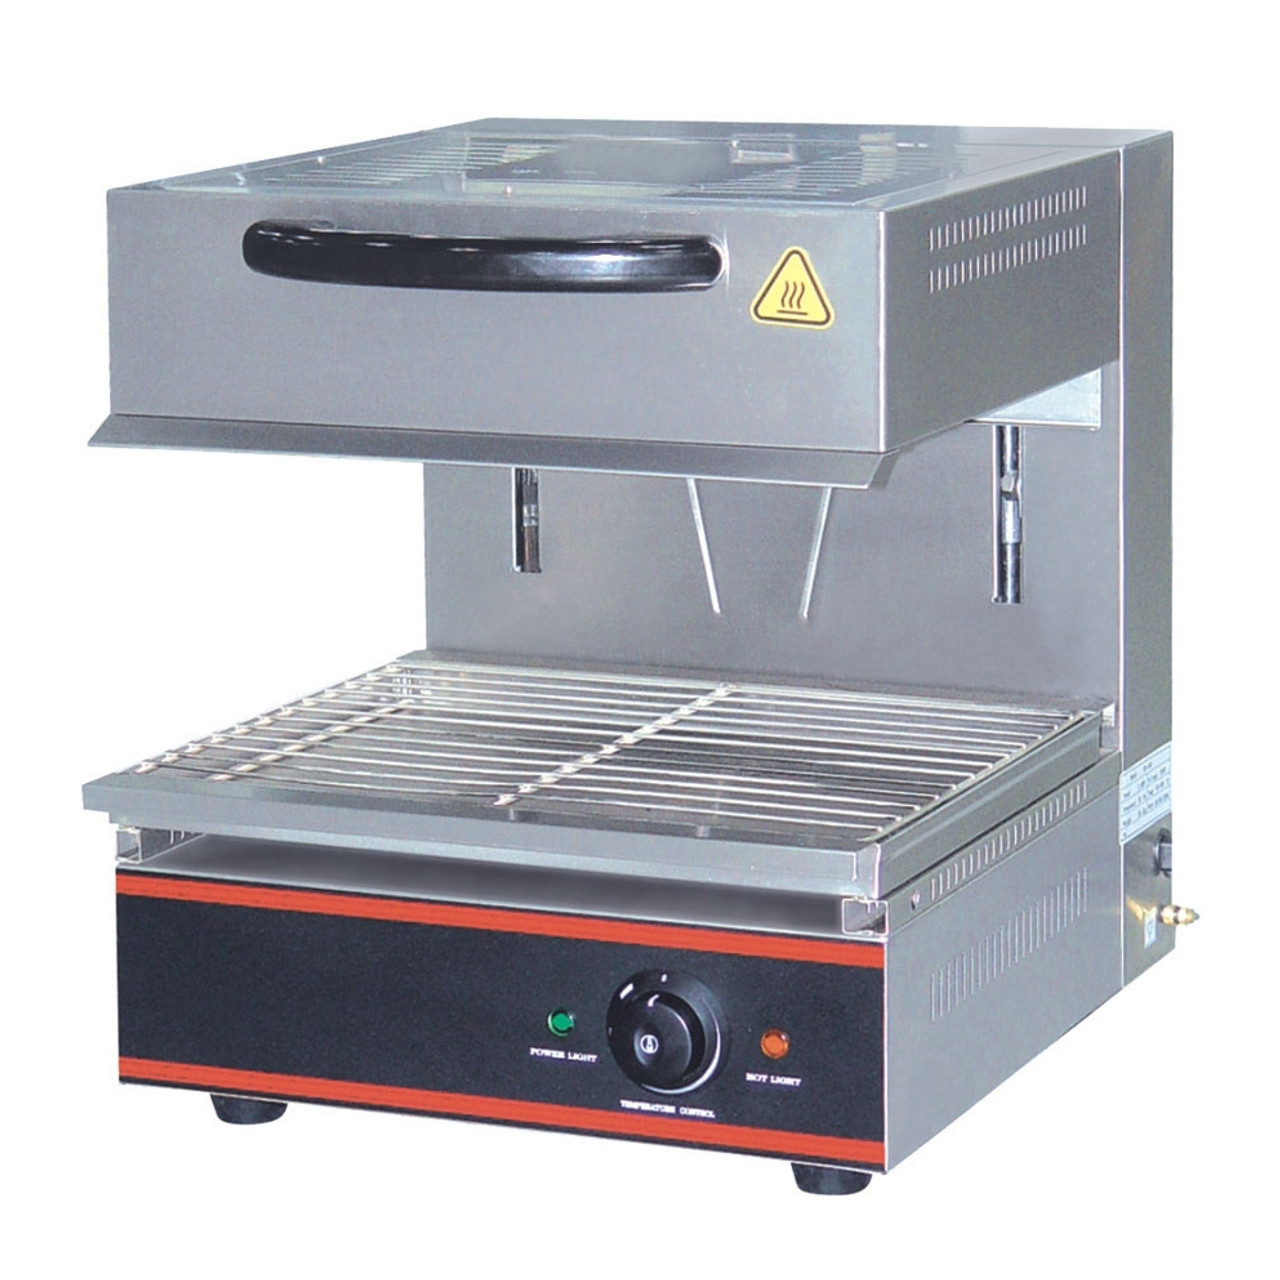 EB-600 Electric Compact Salamander - National Kitchen Equipment